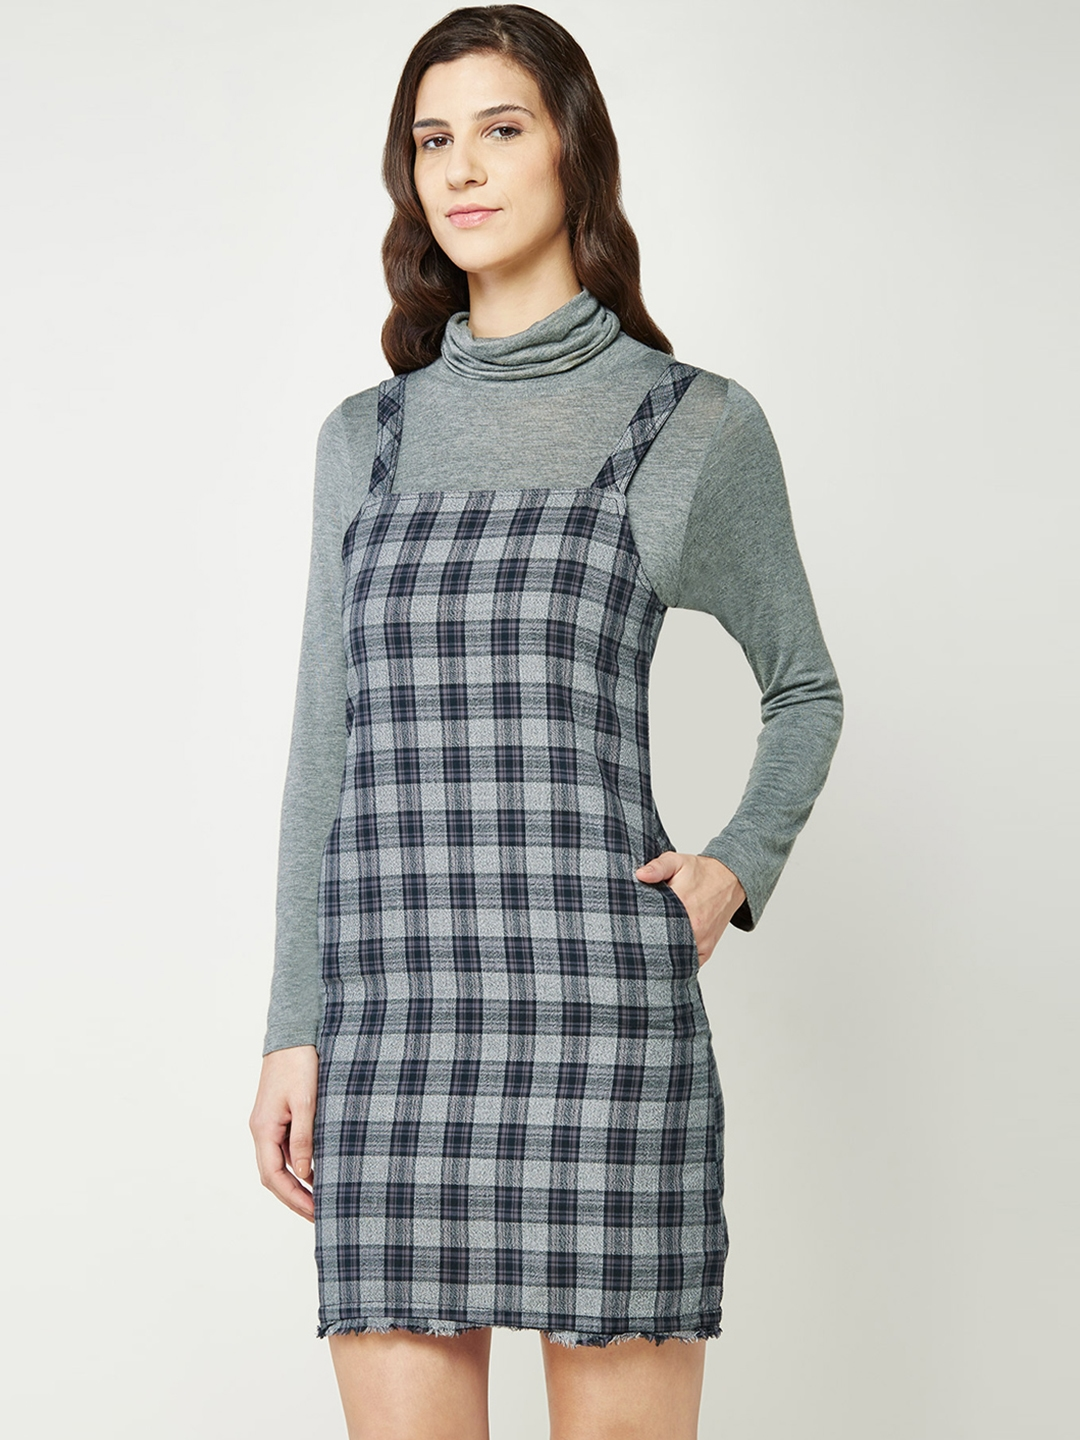 b38d4d0318 Buy AND Women Grey   Black Checked Dungaree Dress - Dresses for Women  1766119